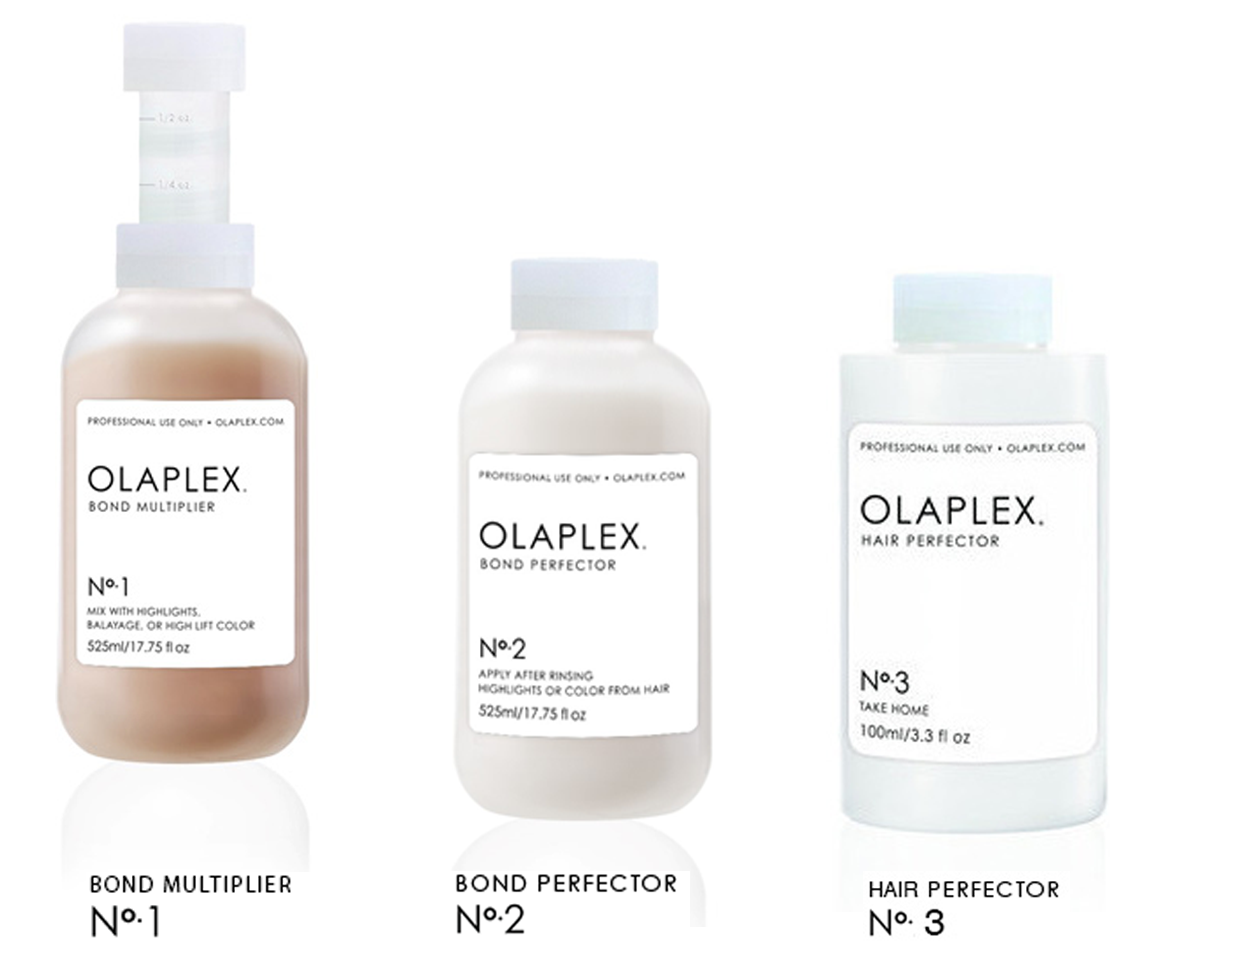 Olaplex: For Brighter, Stronger, Healthier Hair